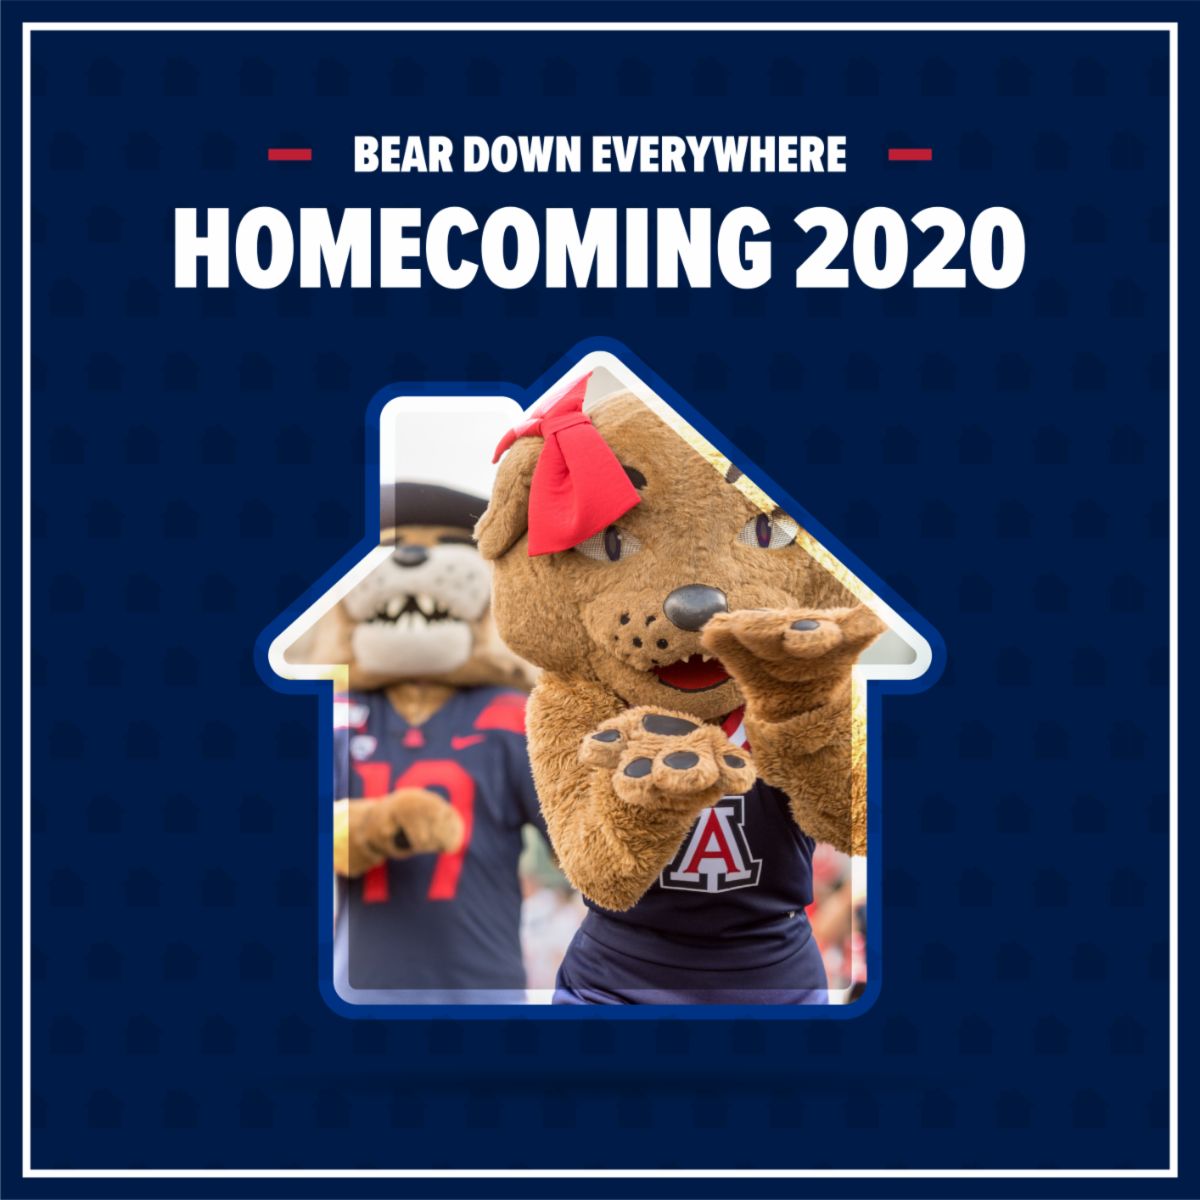 Blue background with white text saying BEAR DOWN EVERYWHERE and Homecoming 2020. Outline of a house with Wilma and Wilbur mascots inside.